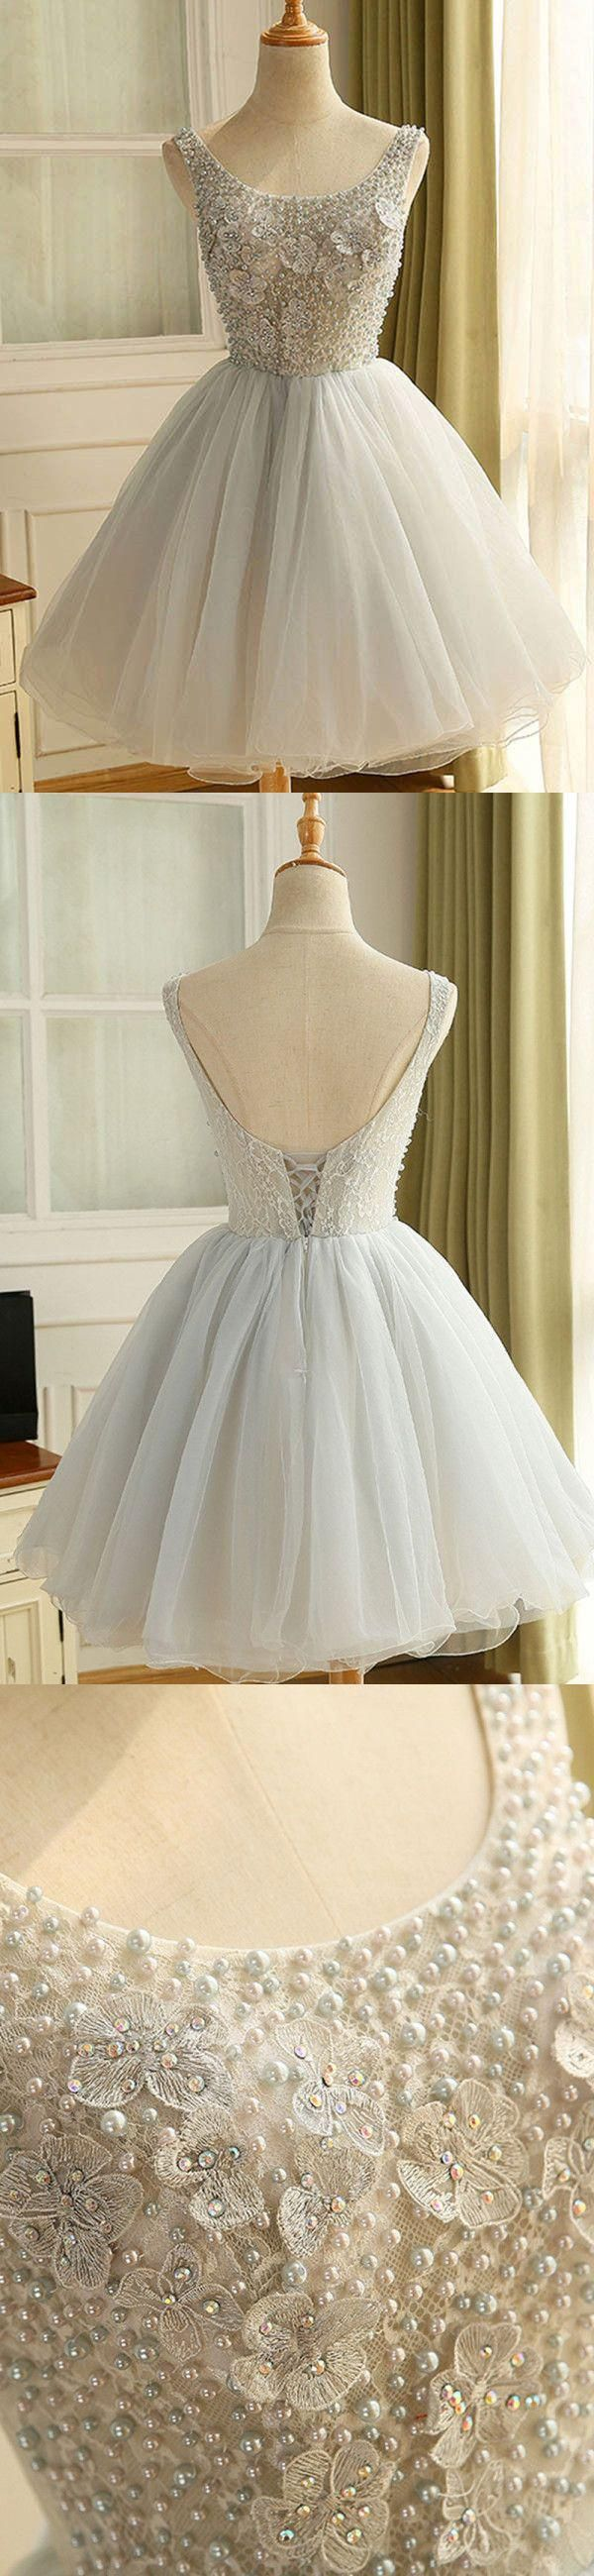 Cheap substantial prom dresses short beautiful prom dresses silver